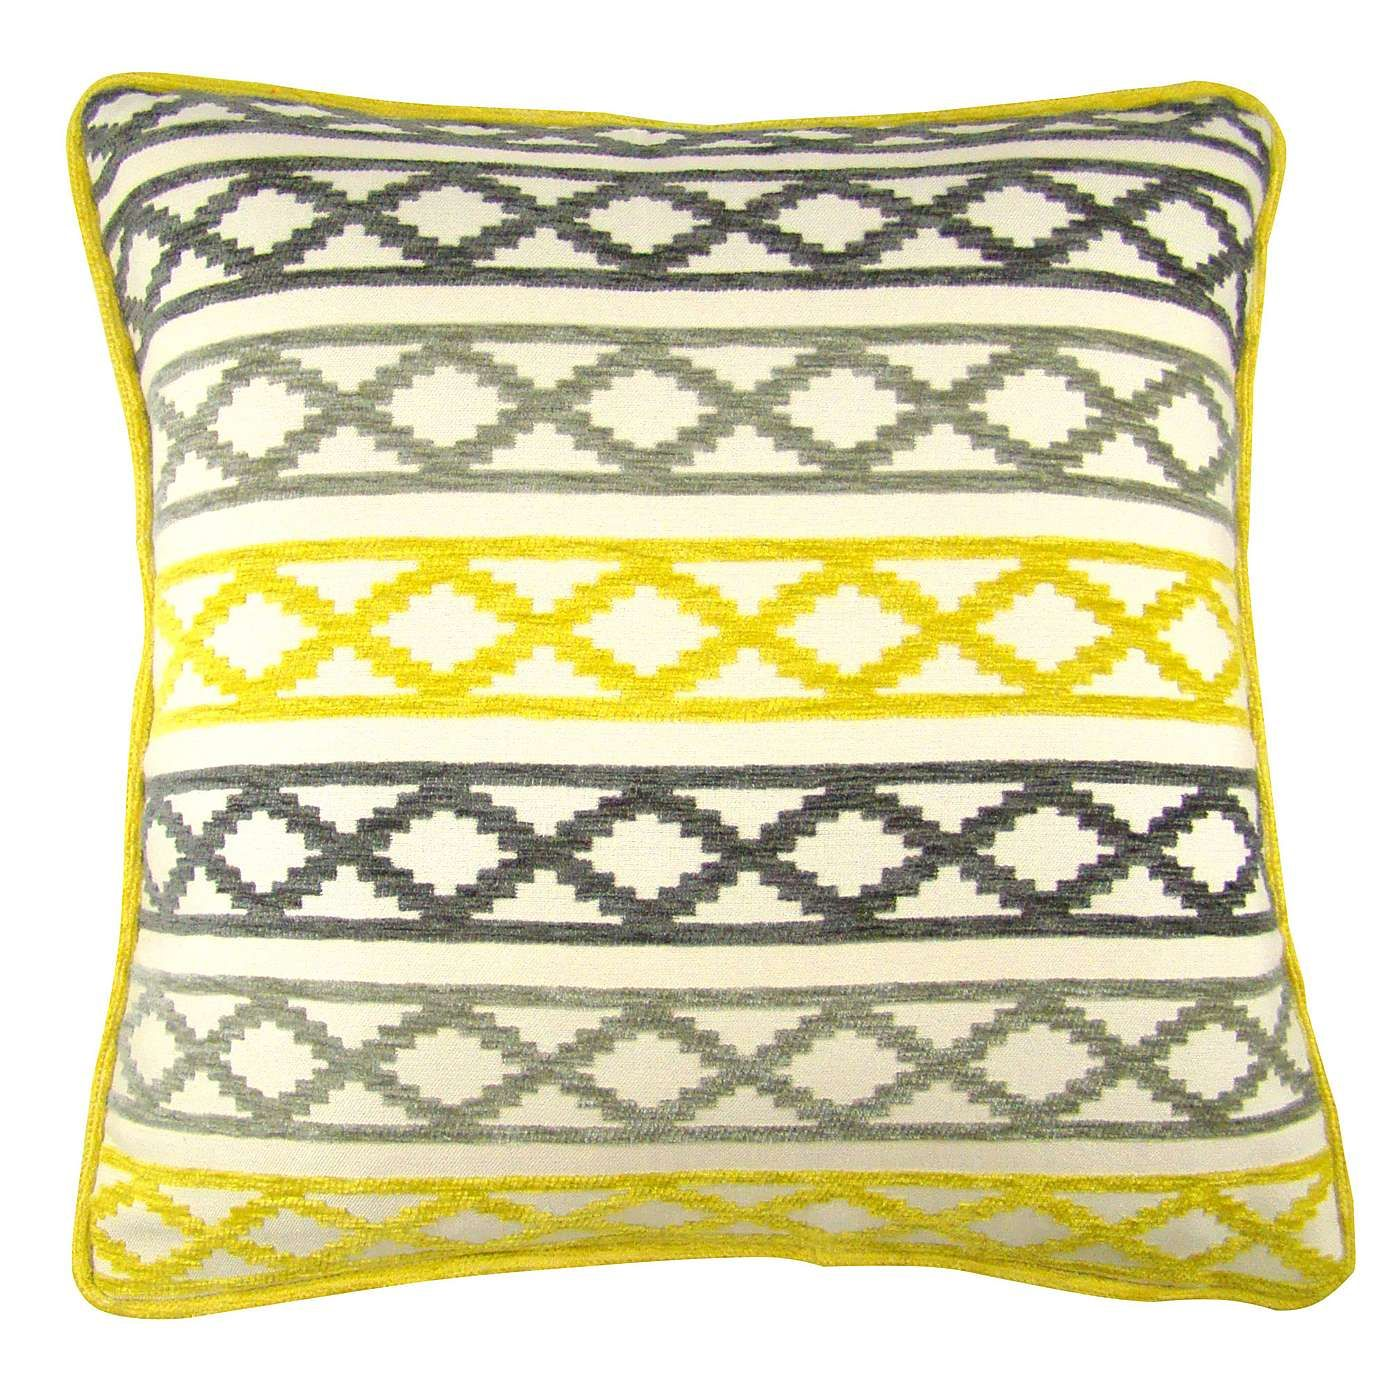 Maddox Ochre Cushion Cover Dunelm For the Home